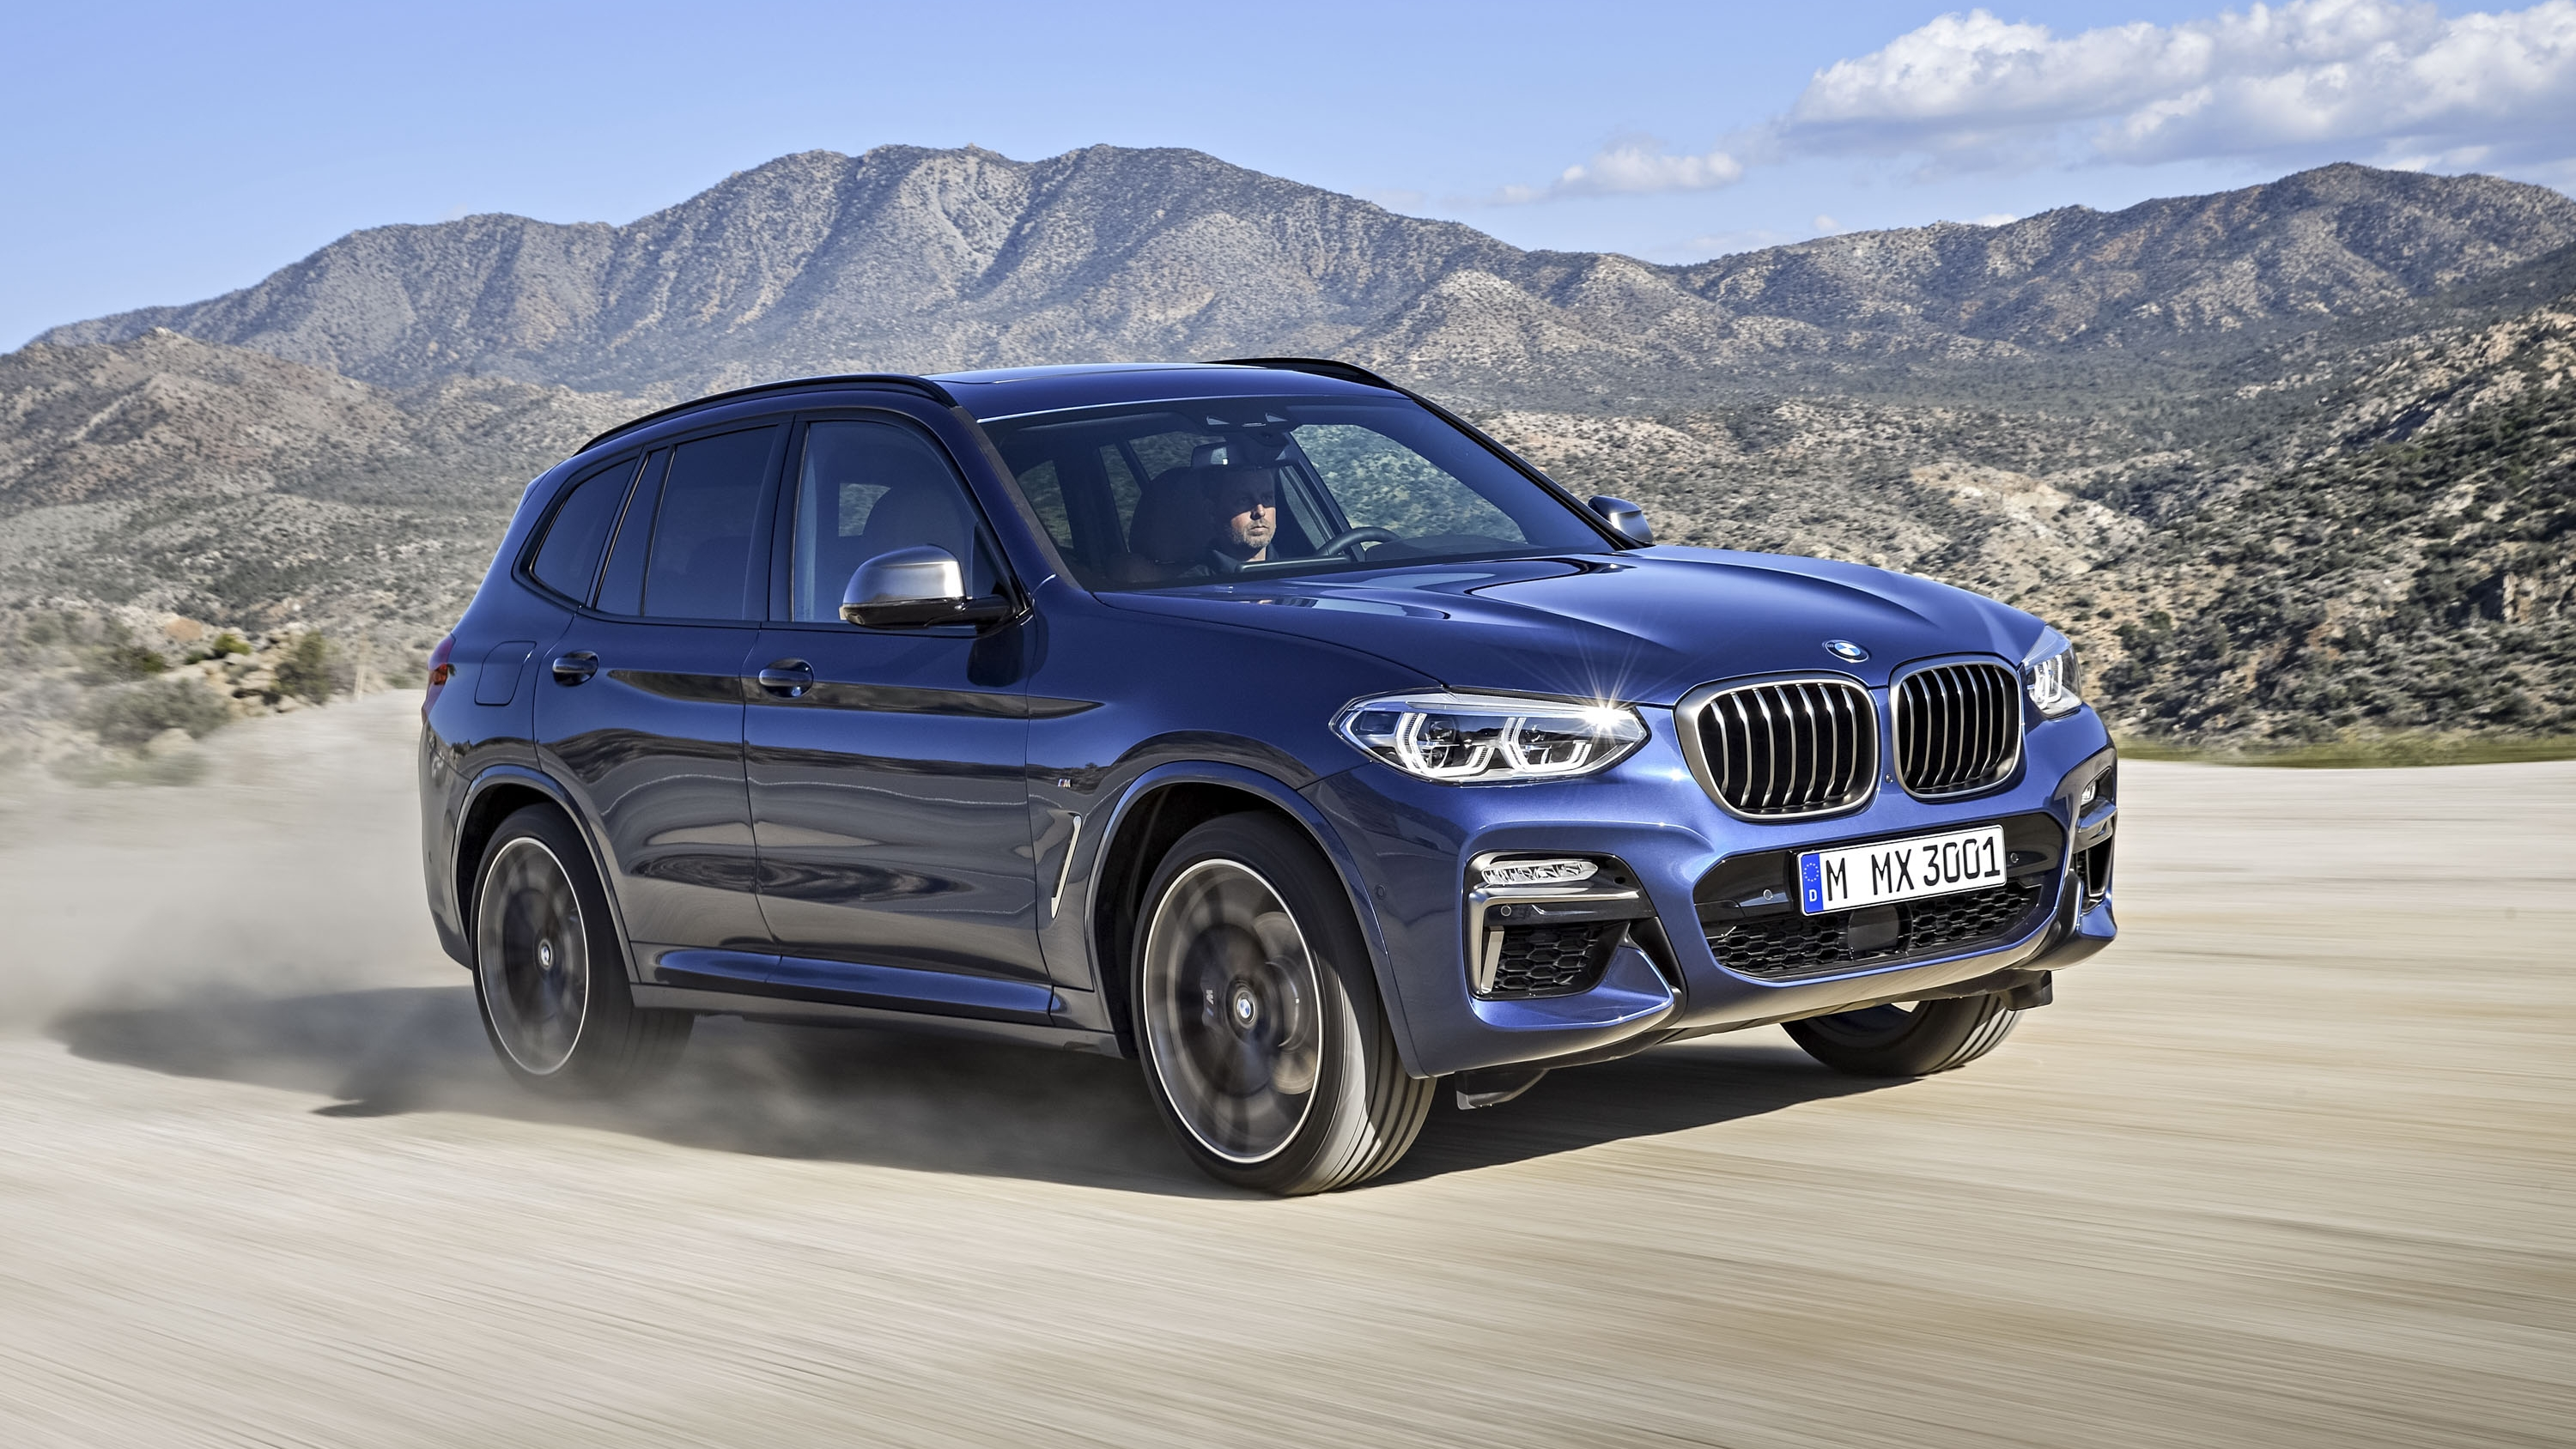 2019 bmw x3 m review gallery top speed. Black Bedroom Furniture Sets. Home Design Ideas